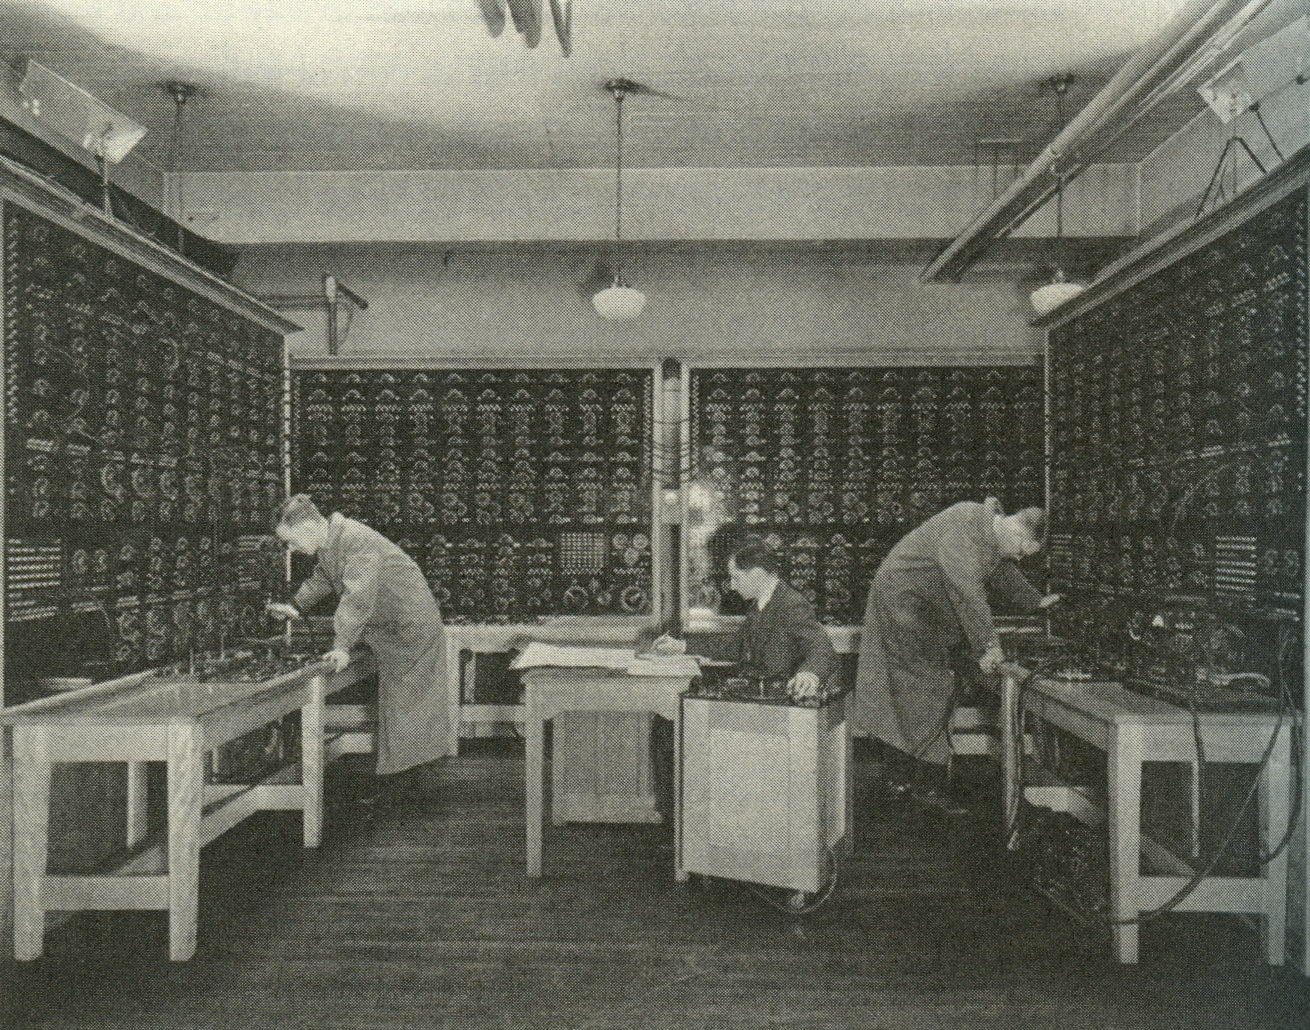 Harold Hazen's network analyzer at MIT, around 1930.